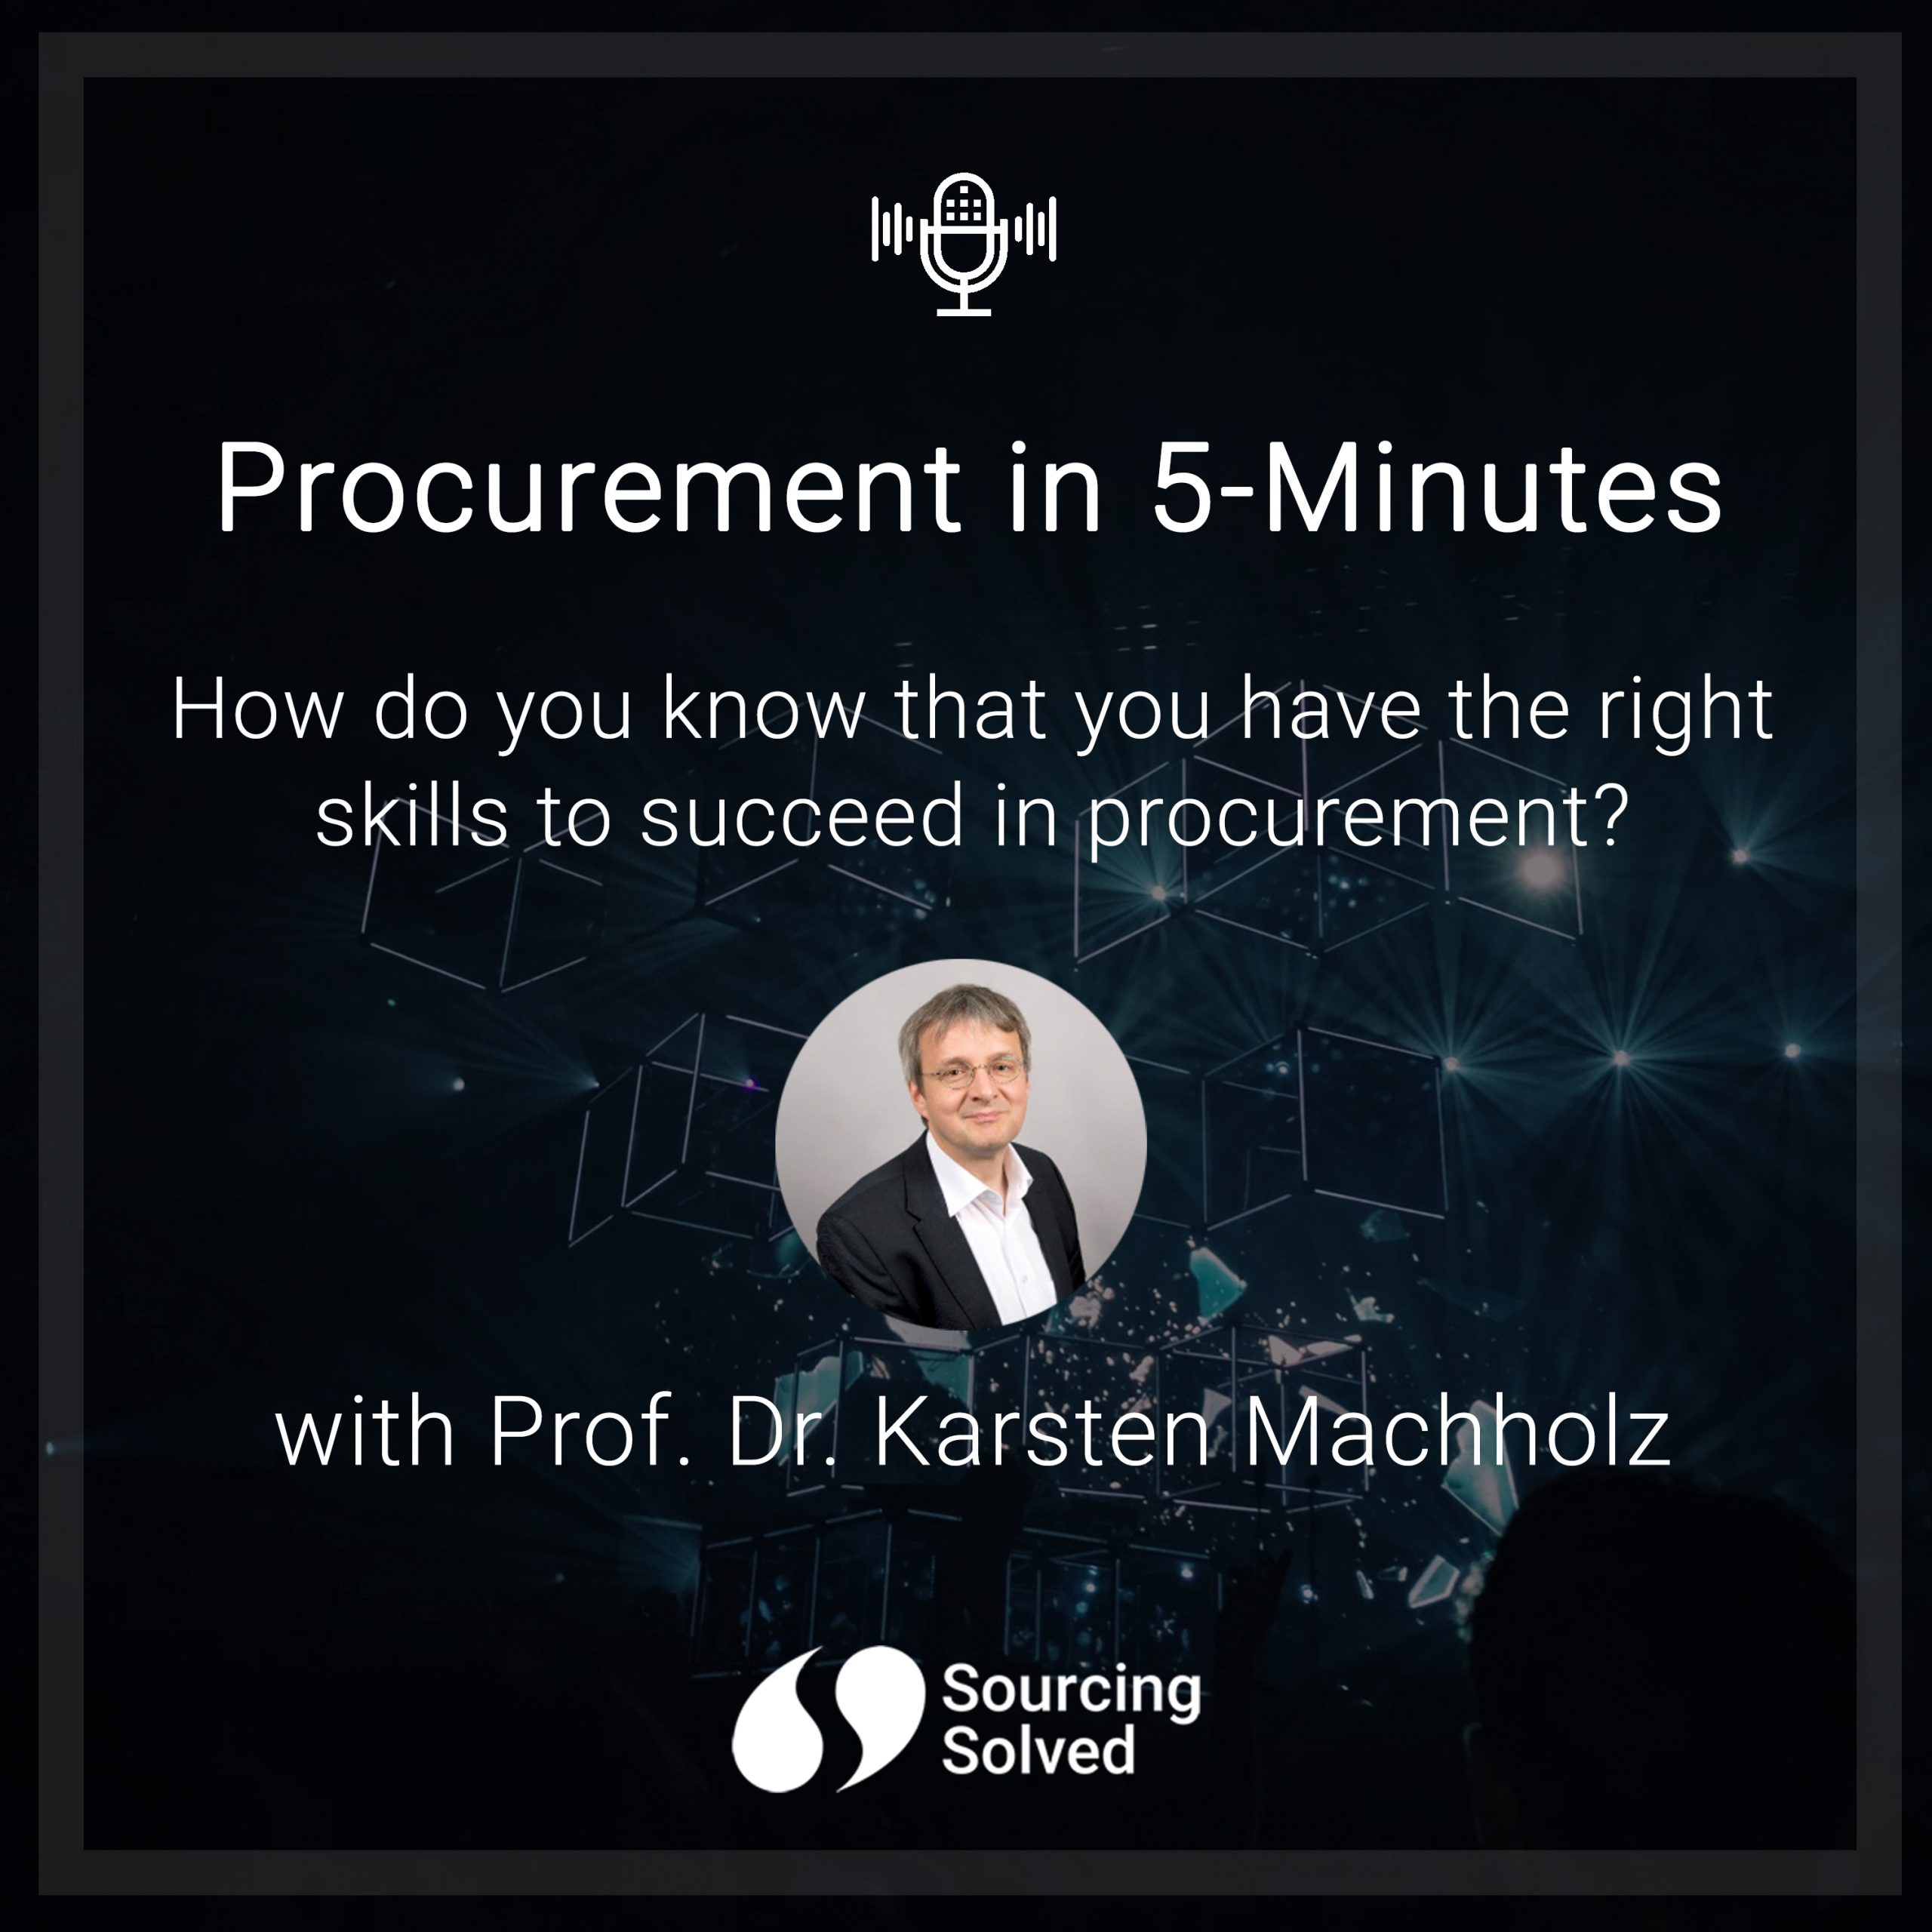 Procurement in 5-Minutes: How do you know that you have the right skills to succeed in procurement?